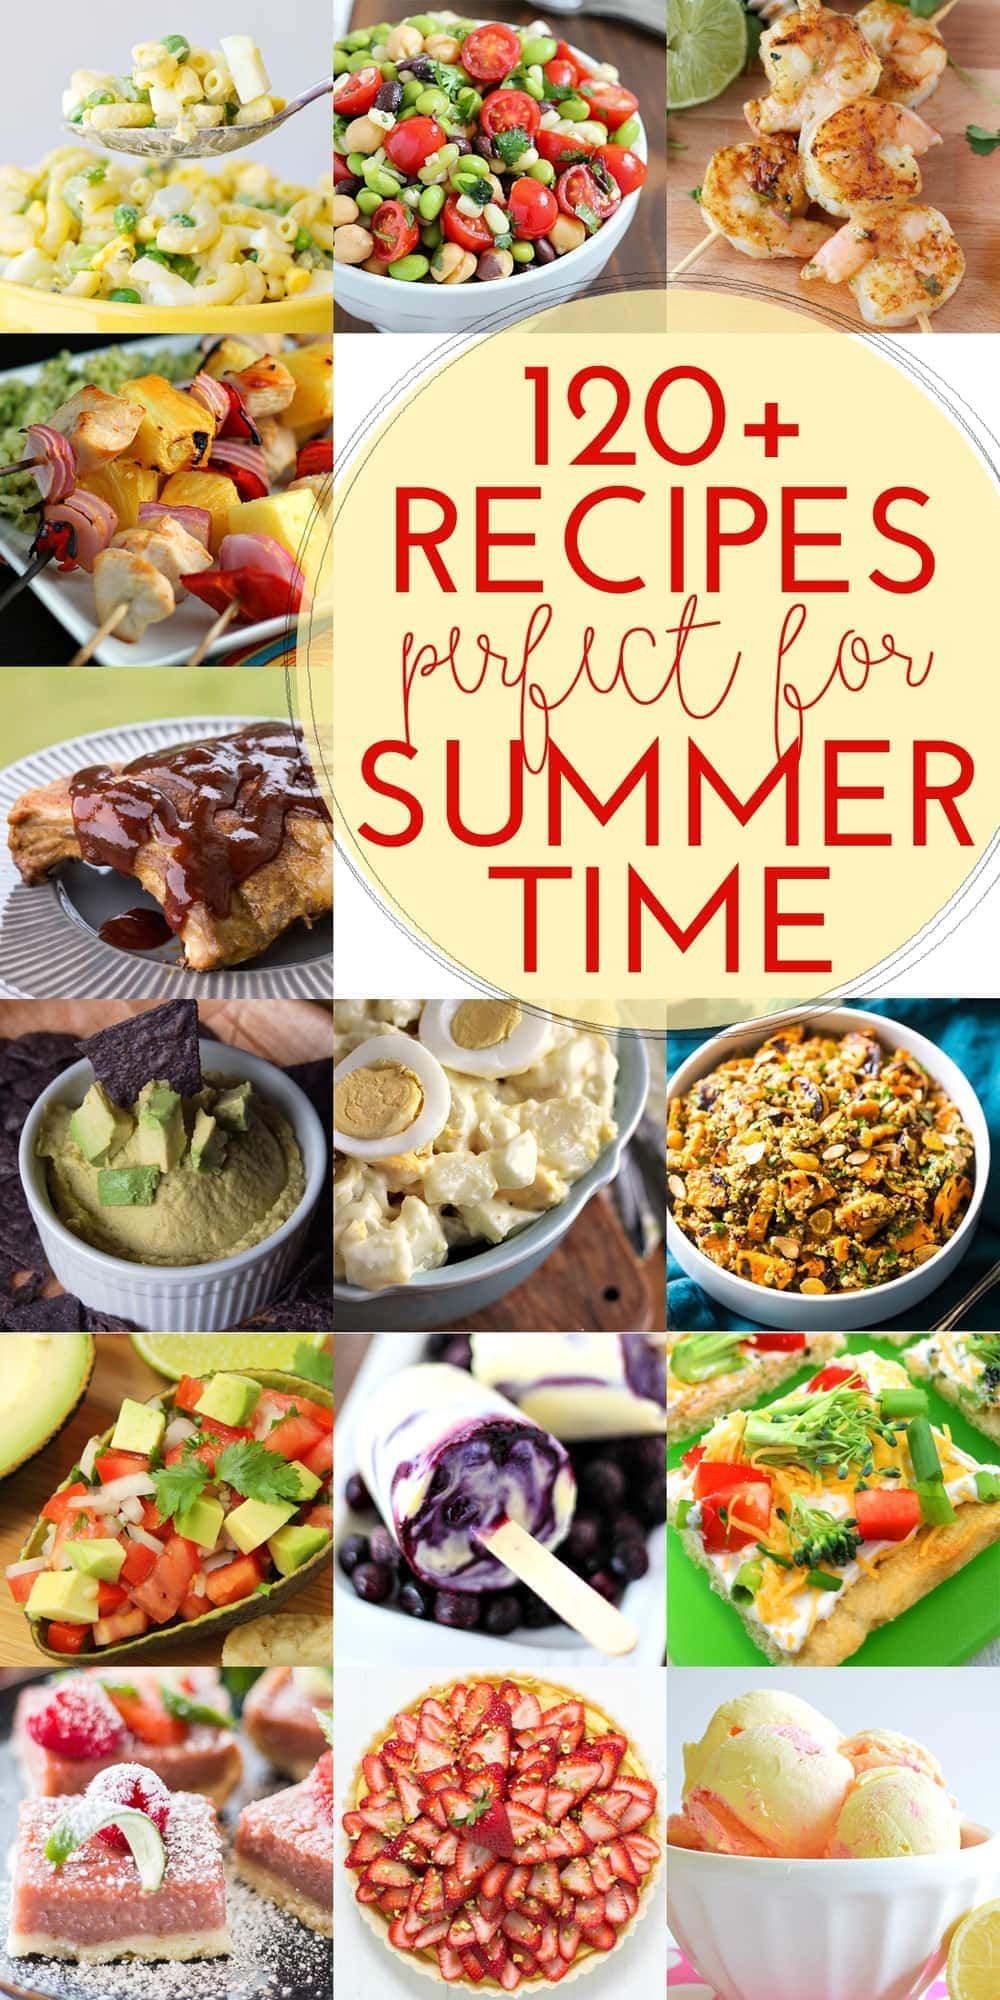 120+ Recipes for Summer